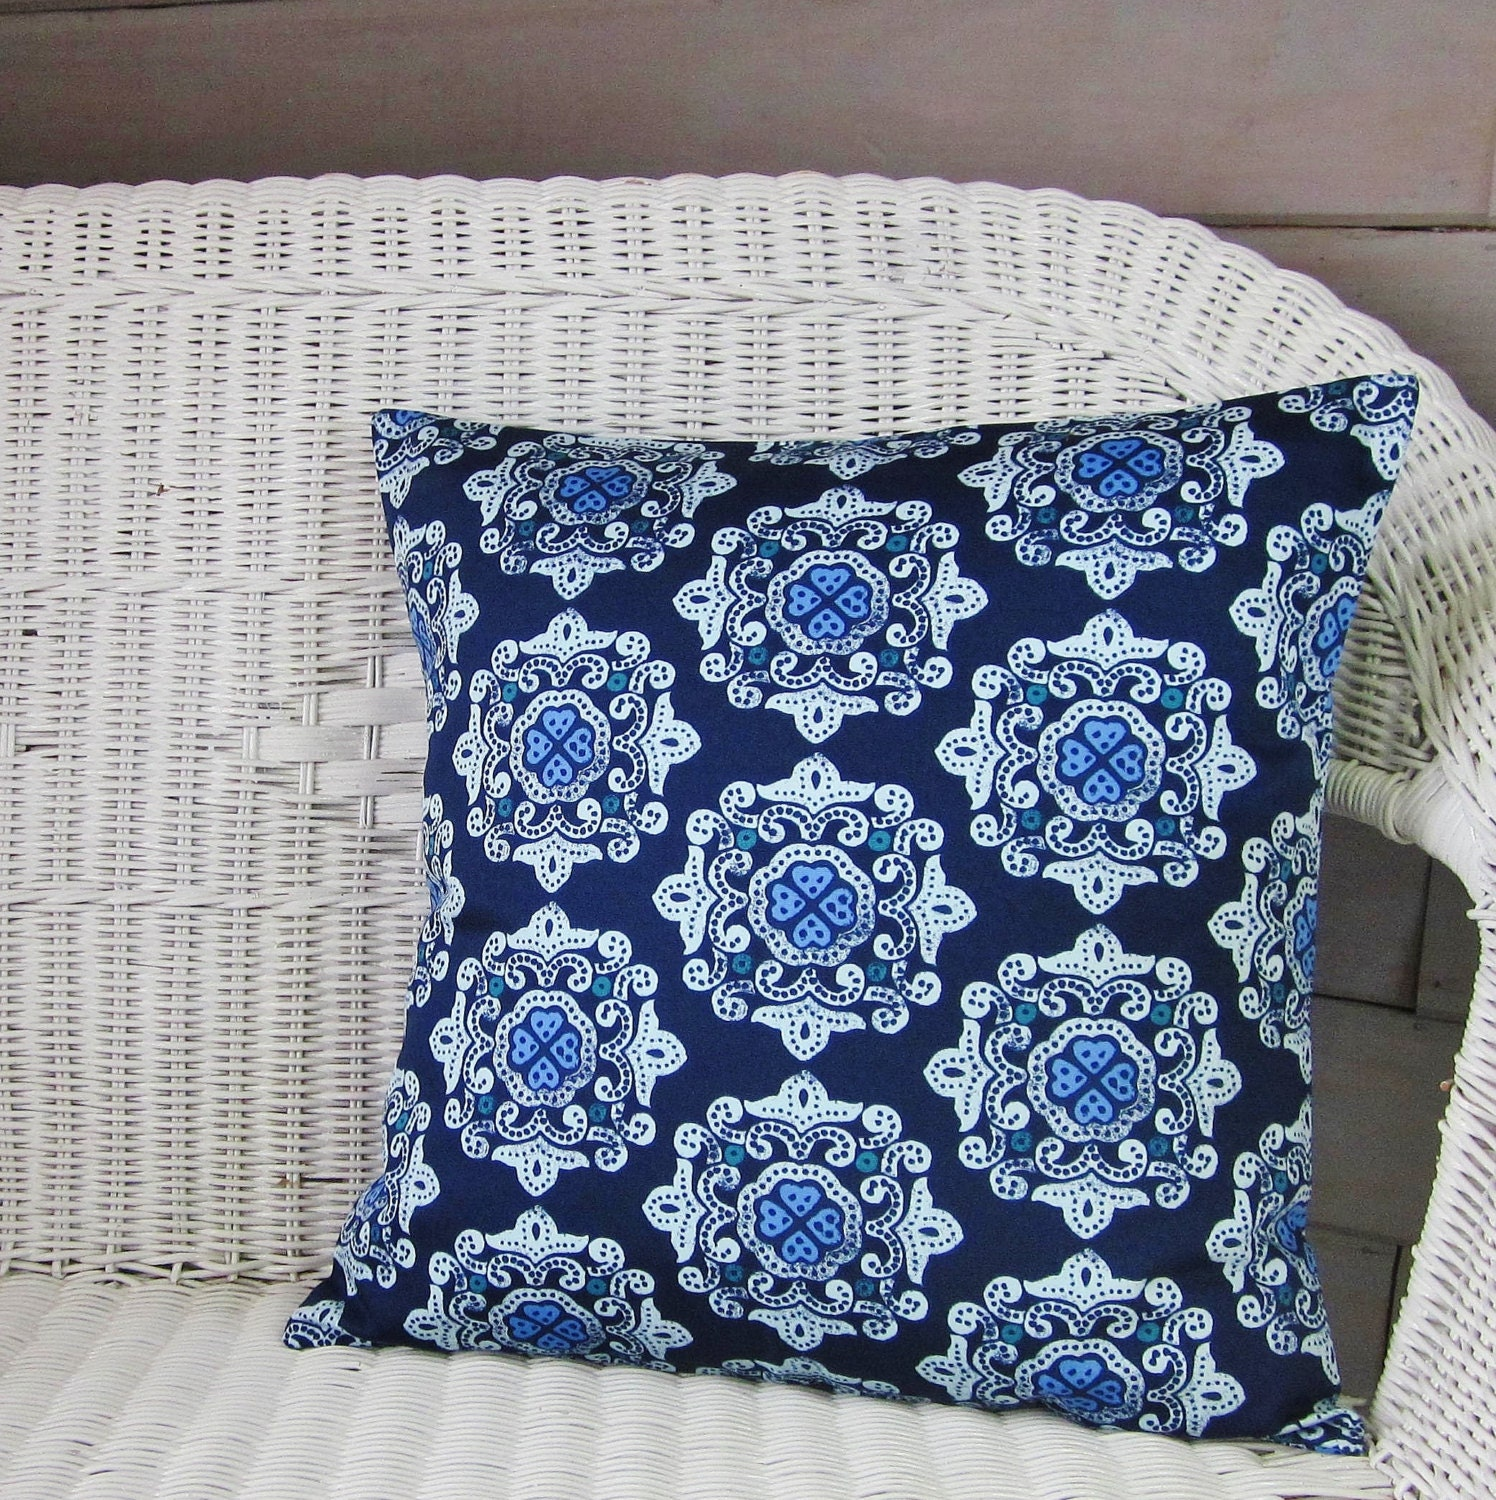 Navy Blue Throw Pillow Covers : Sale Navy Blue Throw Pillow Cover Geometric by TheDecorativePillow